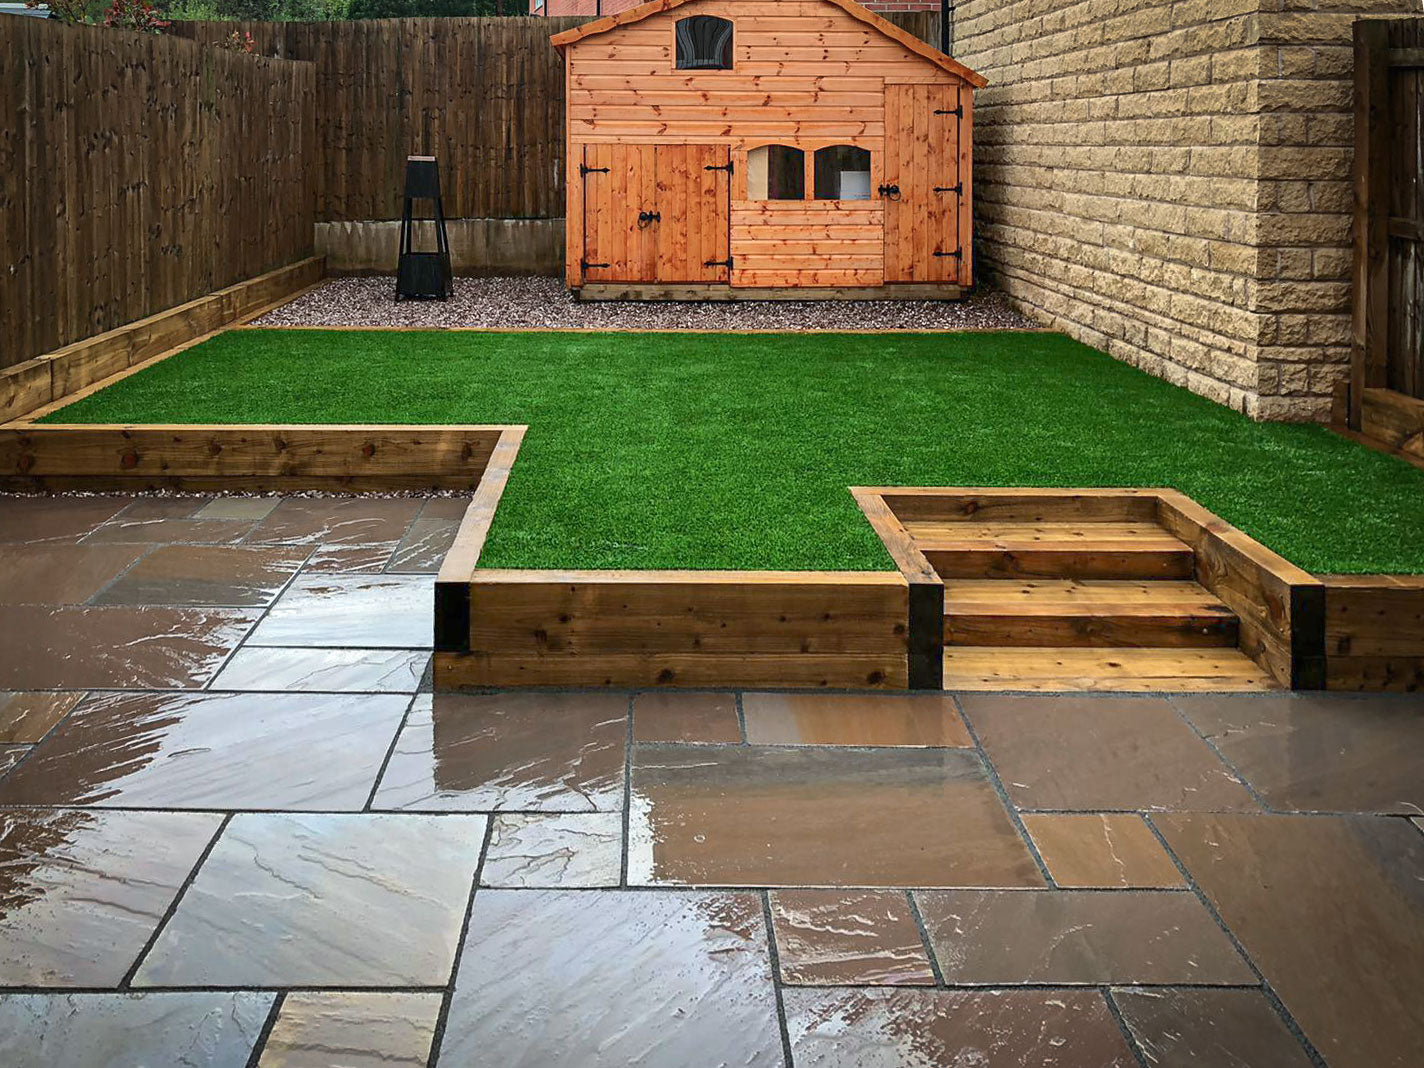 PCRS - Tidy Turf Artificial Grass & Landscaping